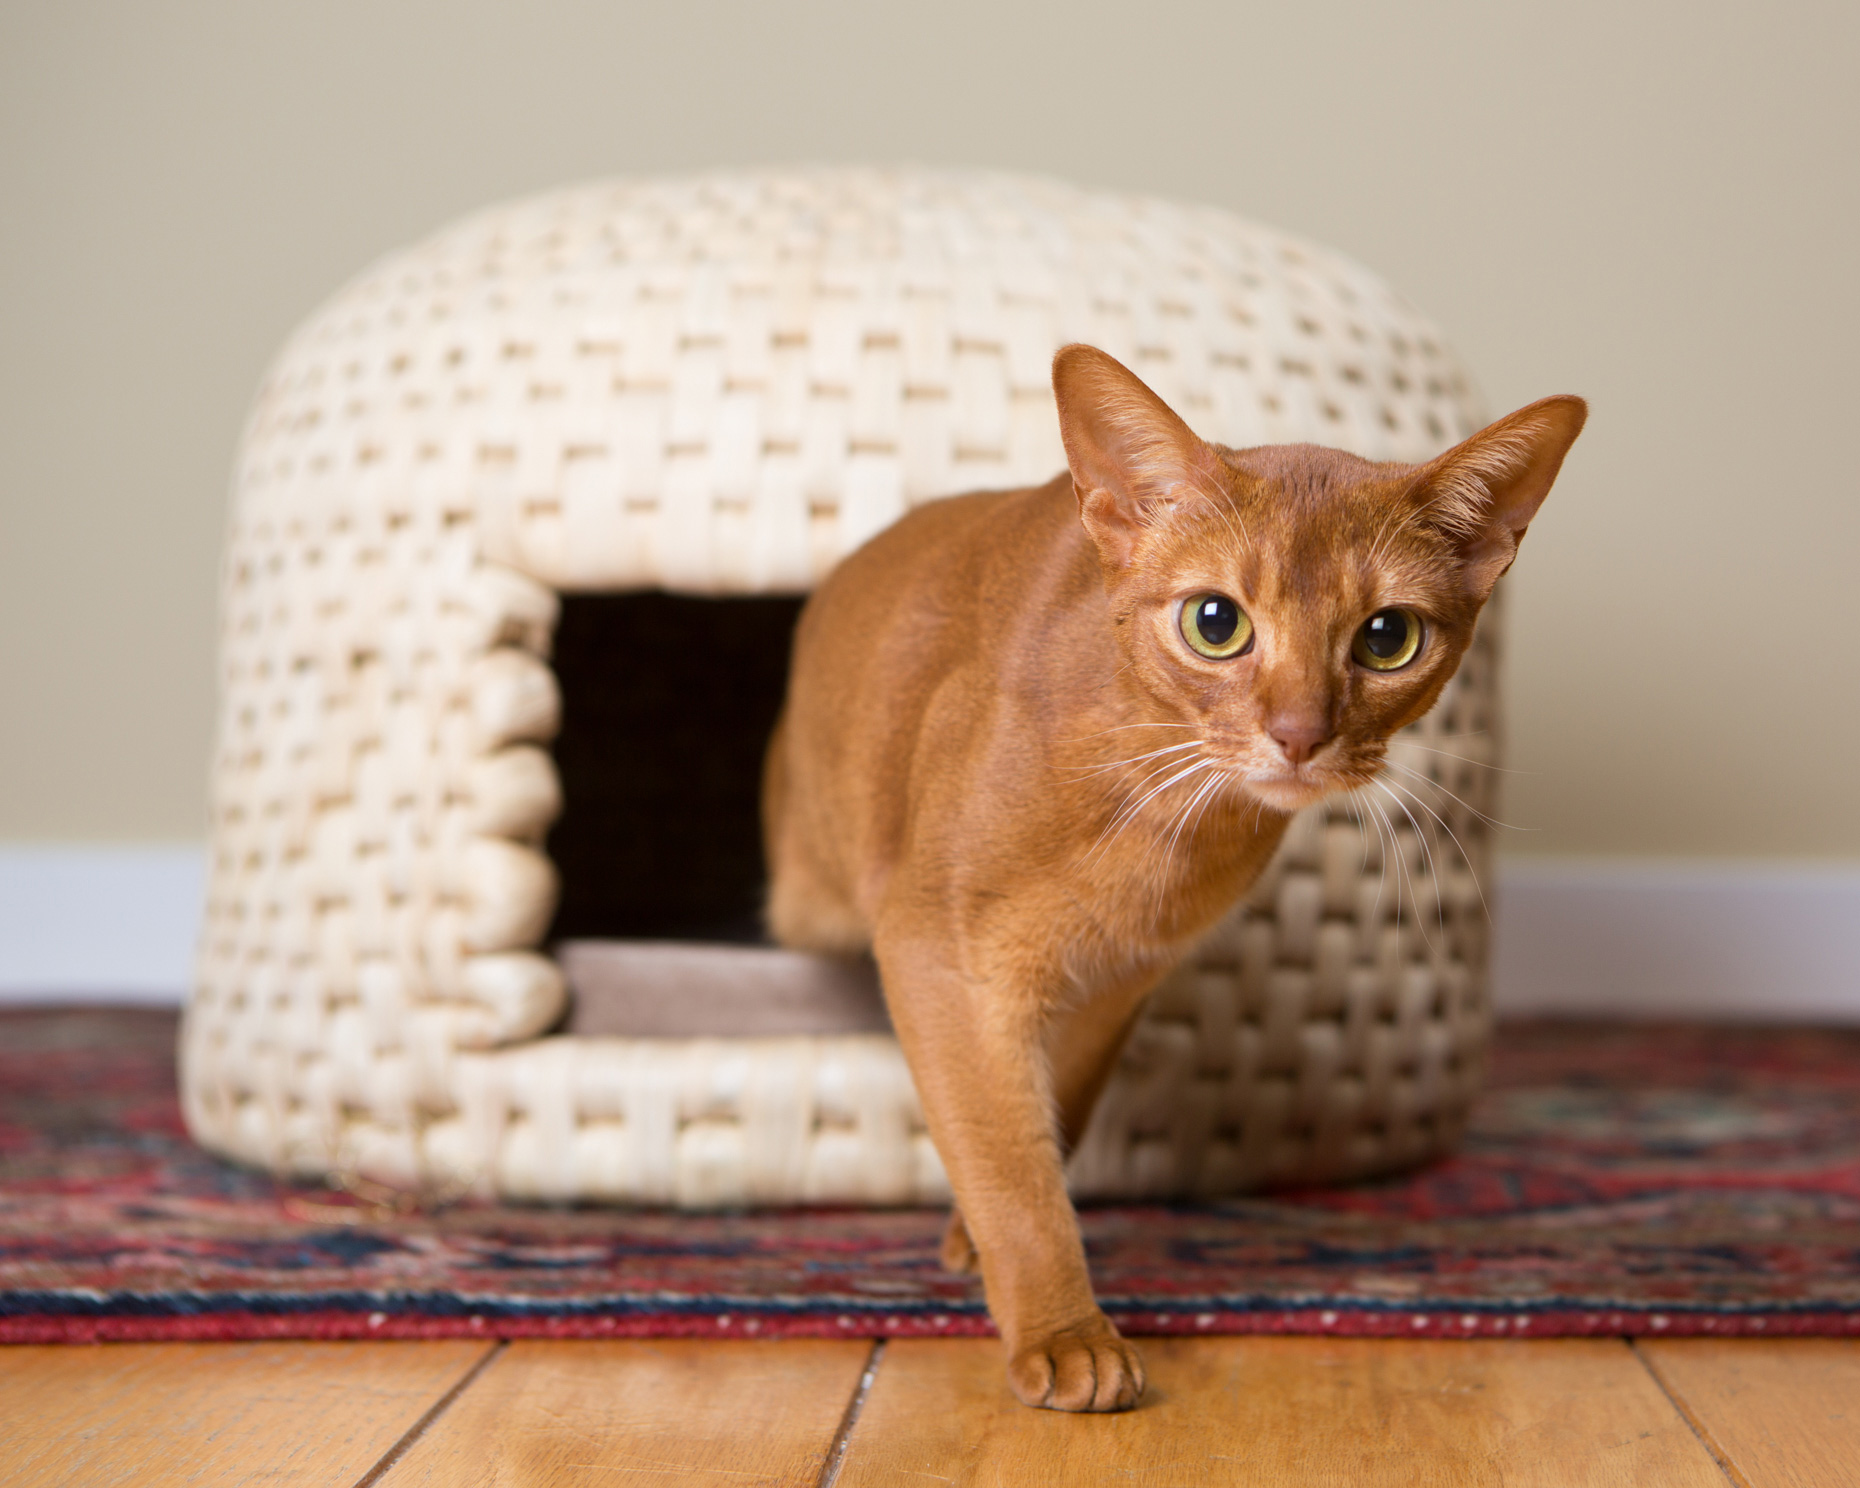 Pet Lifestyle Photography | Cat Walking From Stylish Habitat by Mark Rogers